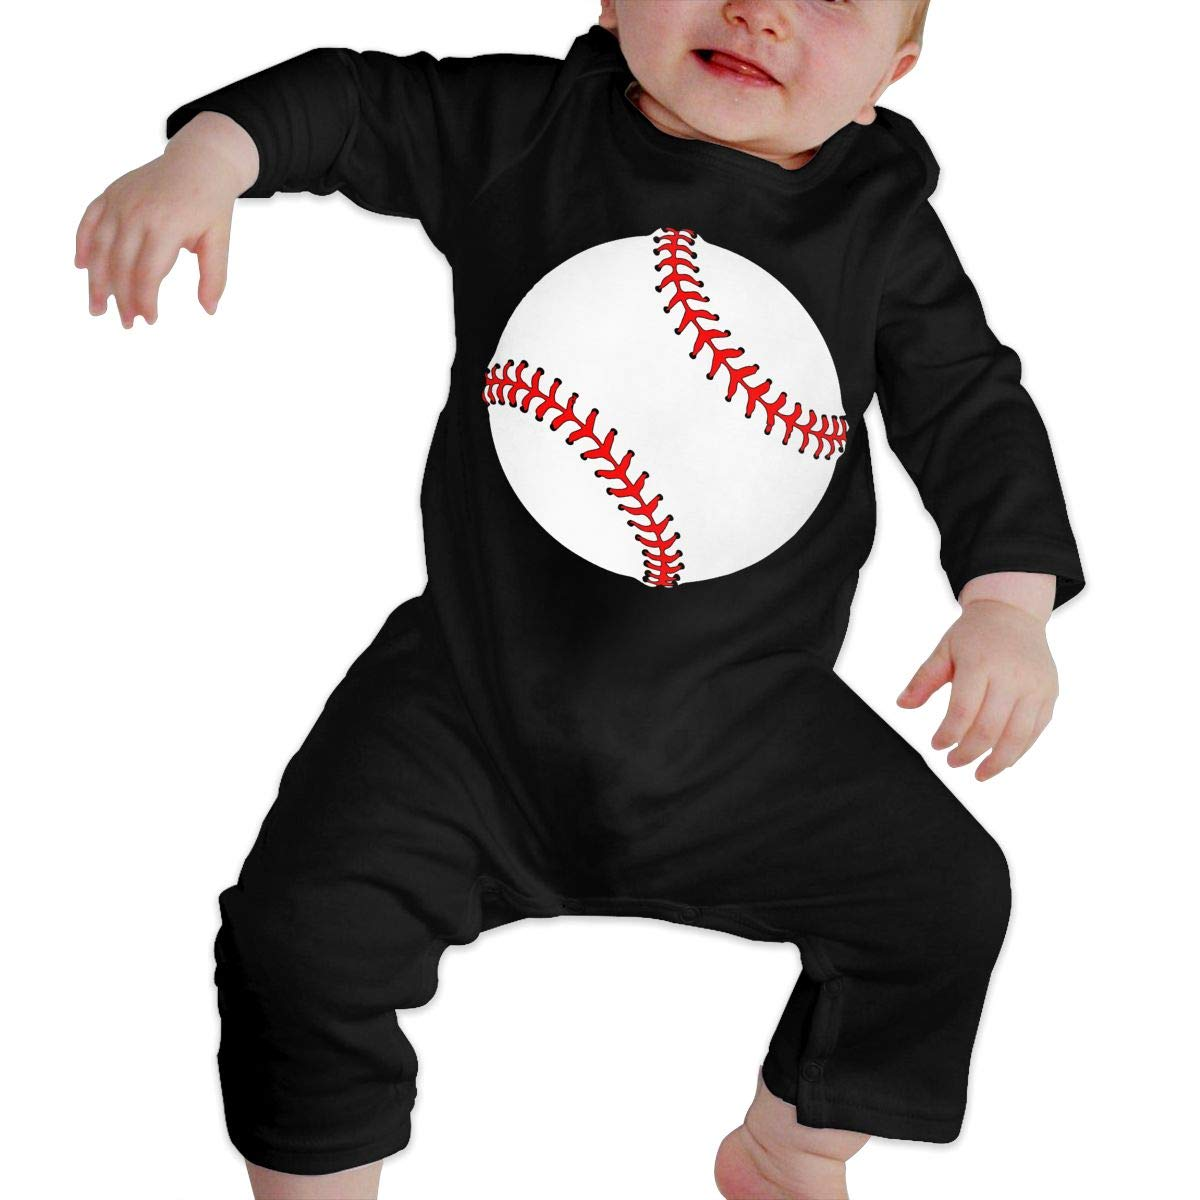 Long Sleeve Cotton Rompers for Baby Boys and Girls Soft Baseball Red Line Jumpsuit